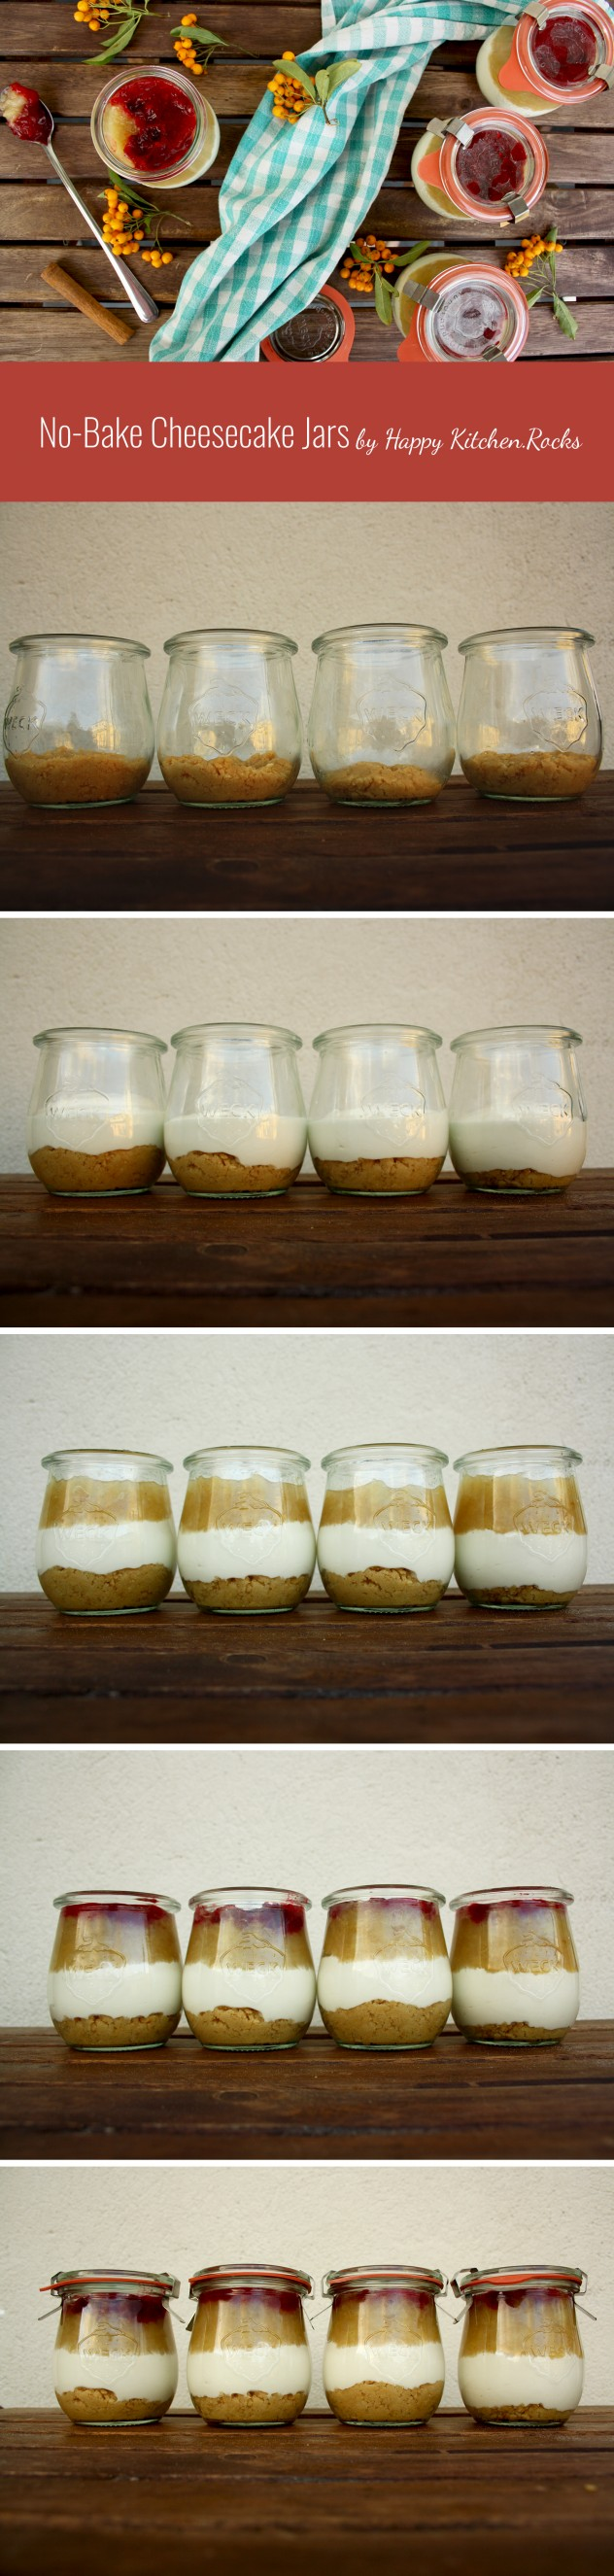 No-Bake Cheesecake Jars which are impressive, healthy, quick and easy to make. Make them ahead for any occasion, eat right away or take them with you.